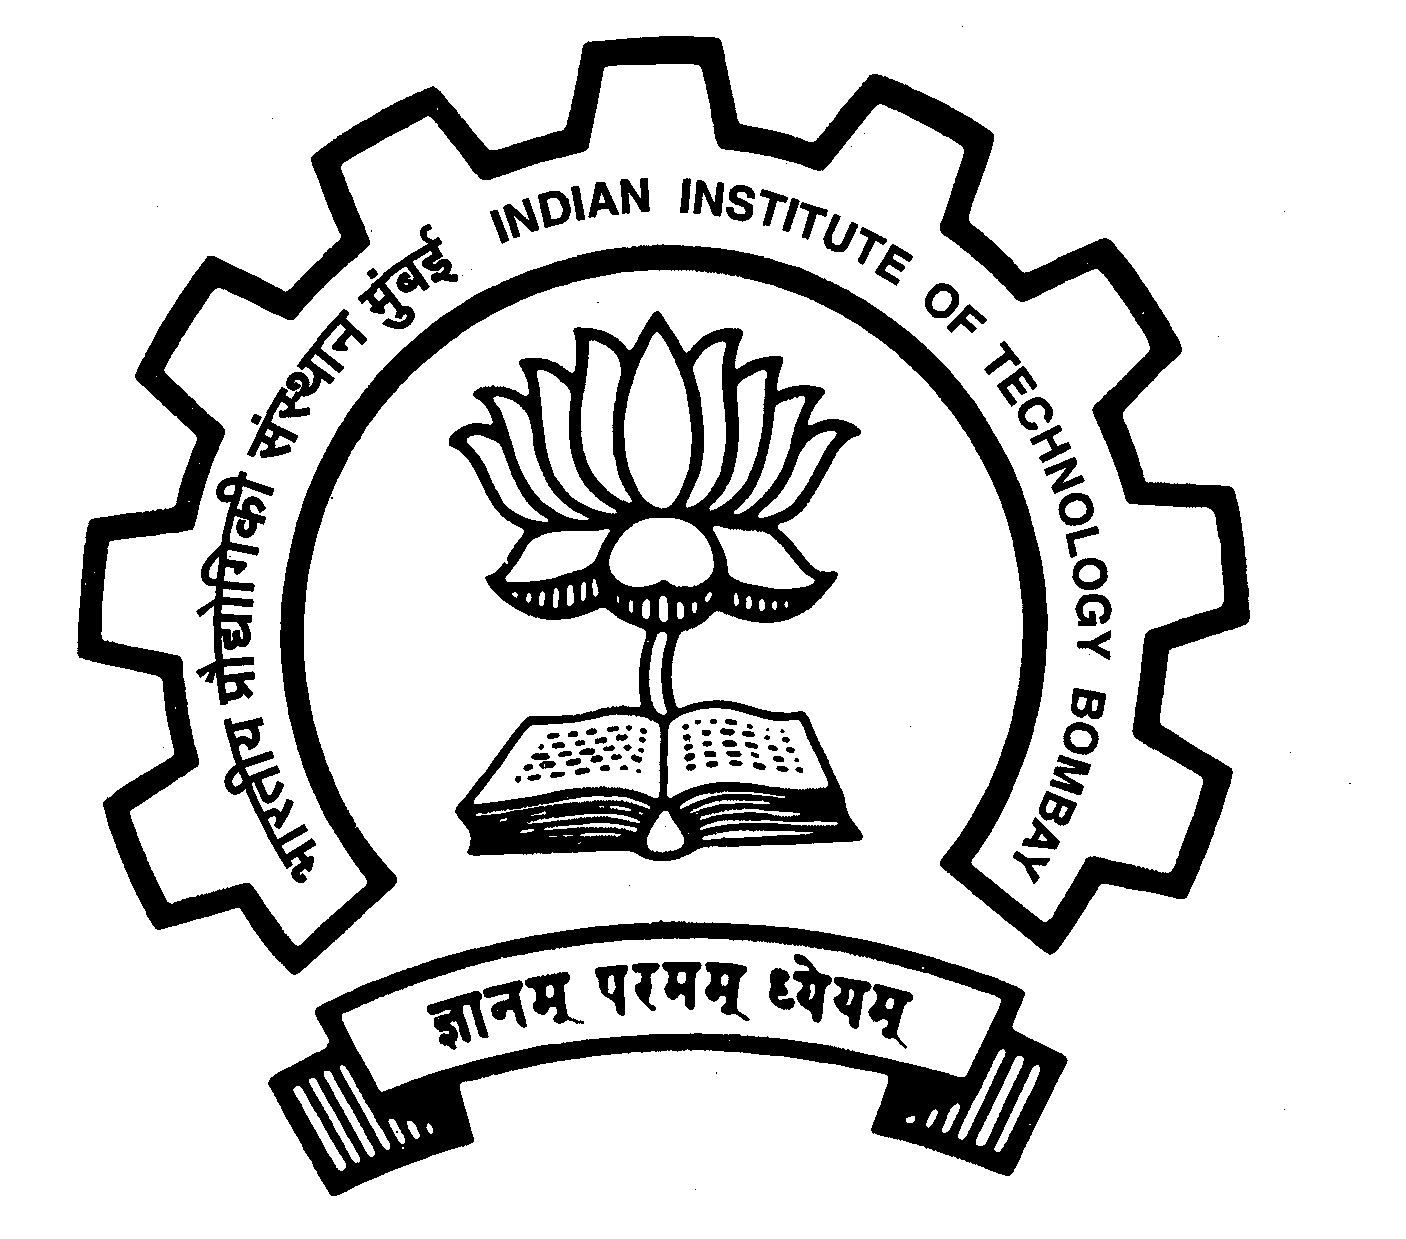 IIT placement, IIT Bombay job record, job record by IIT Bombay, job placement at IIT, IIT placement centre, IIT job offered, IIT job in Bombay, IIT job recruitment, IIT Bombay placement, IIT Bombay students recruitment, IIT students recruitment in Bombay, IIT Bombay students